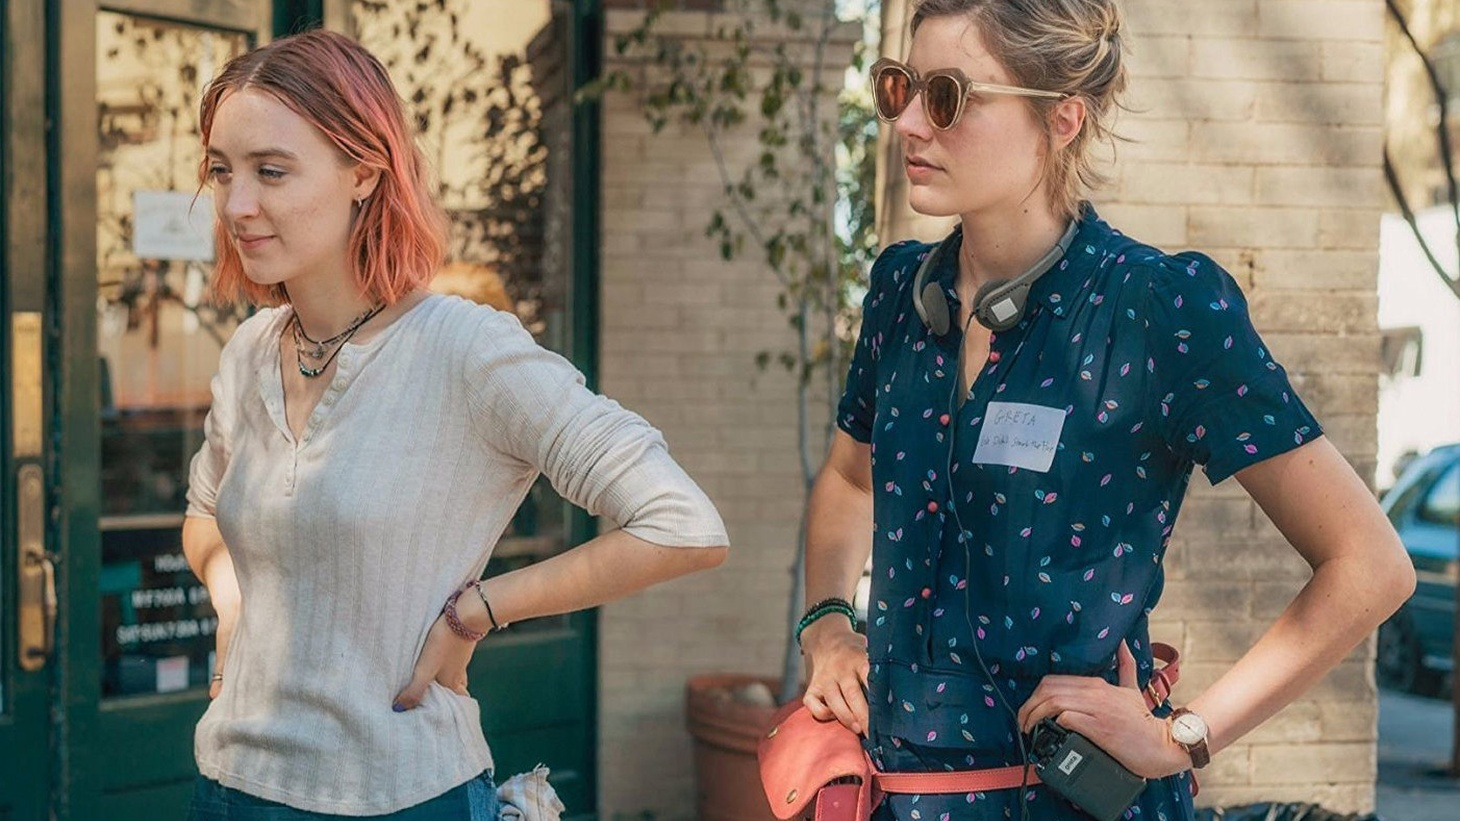 Greta Gerwig is one of the pre-eminent actors of our time, and fine actors often make good directors. And she's no stranger to the art of the screenplay.